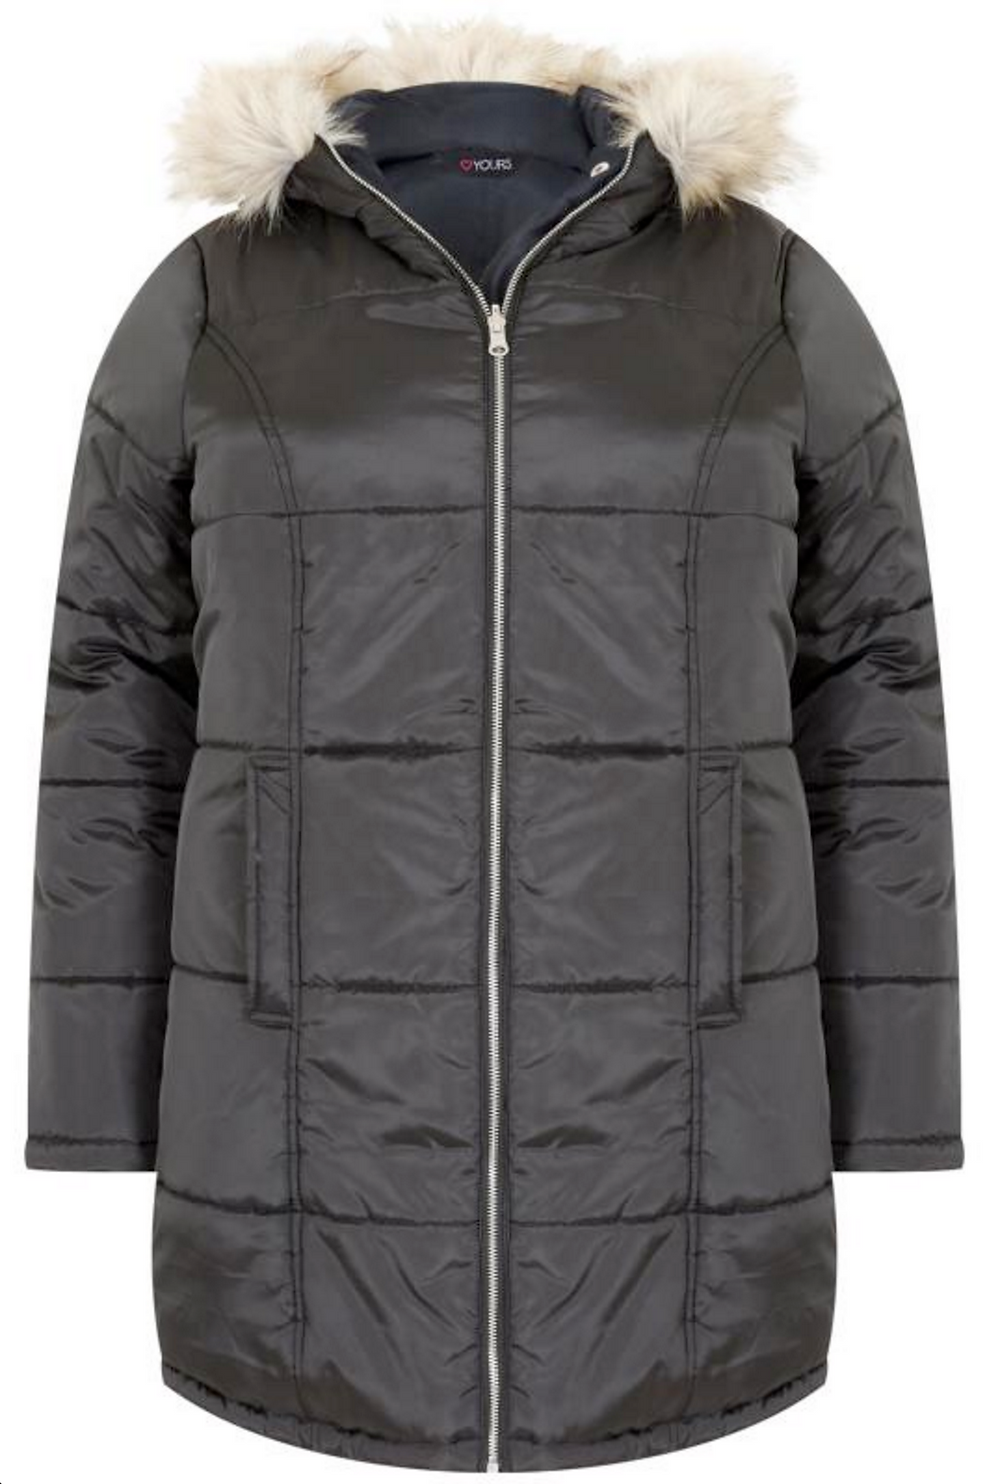 Converible puffer Jacket YOURS CLOTHING